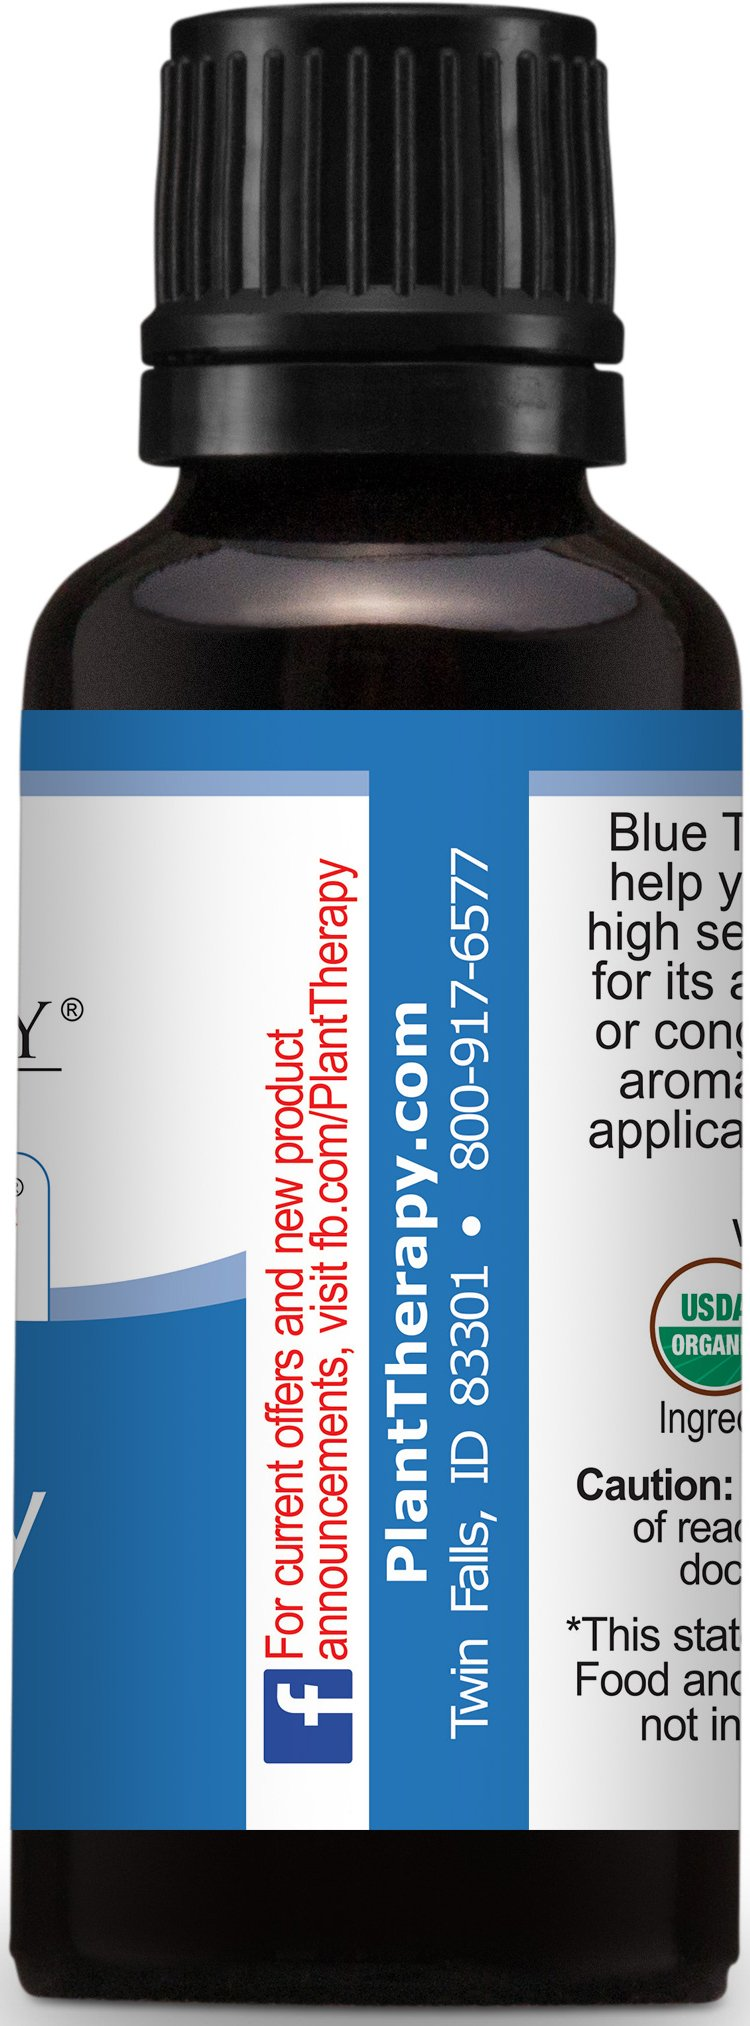 Plant Therapy USDA Certified Organic Blue Tansy Essential Oil. 100% Pure, Undiluted, Therapeutic Grade. 30 ml (1 oz). by Plant Therapy (Image #4)